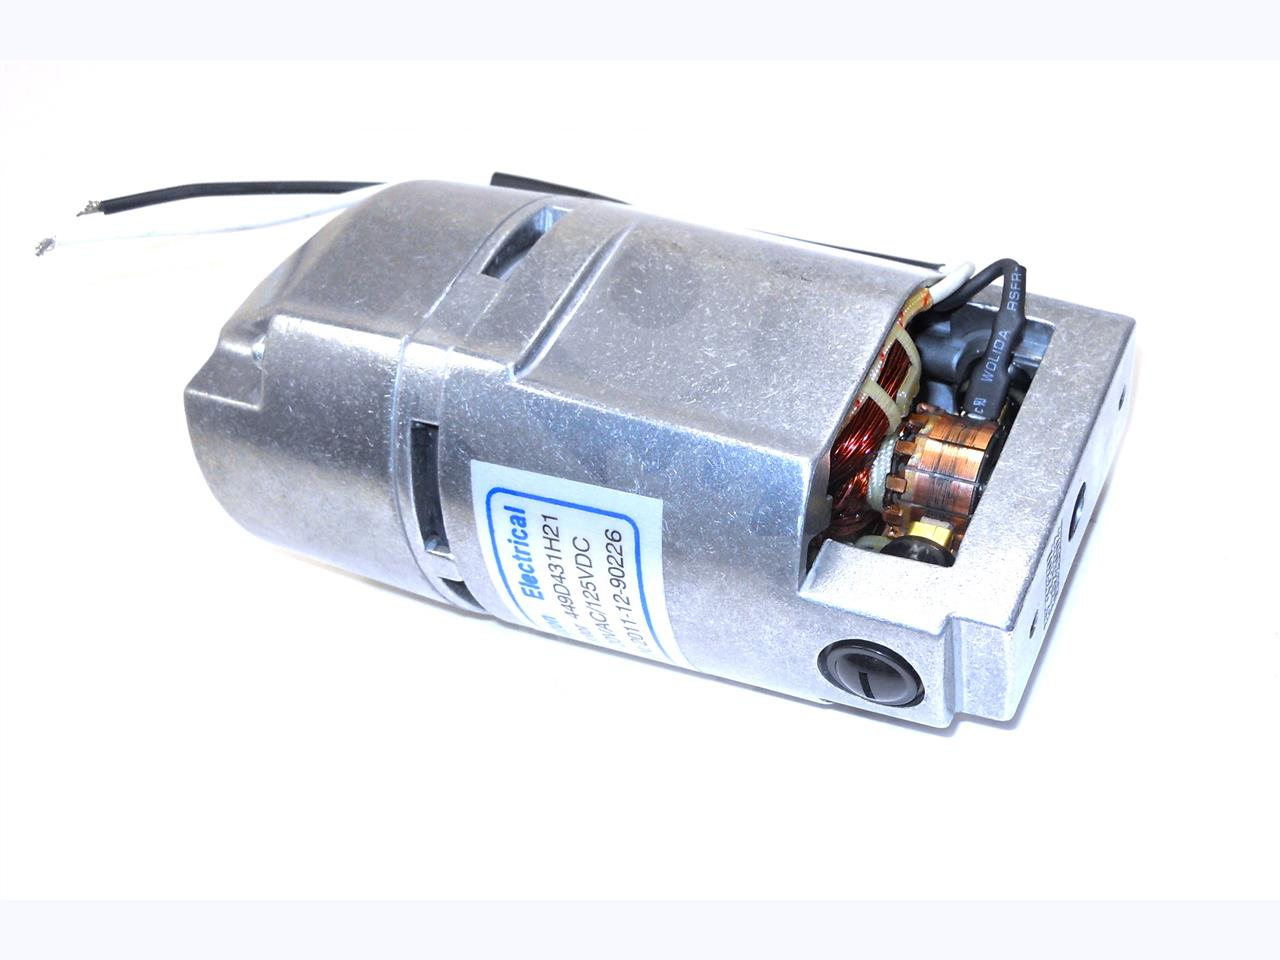 Westinghouse Cutler Hammer Wh 120vac Dc Charge Motor Eaton Shunt Trip Breaker Wiring Diagram With Push On